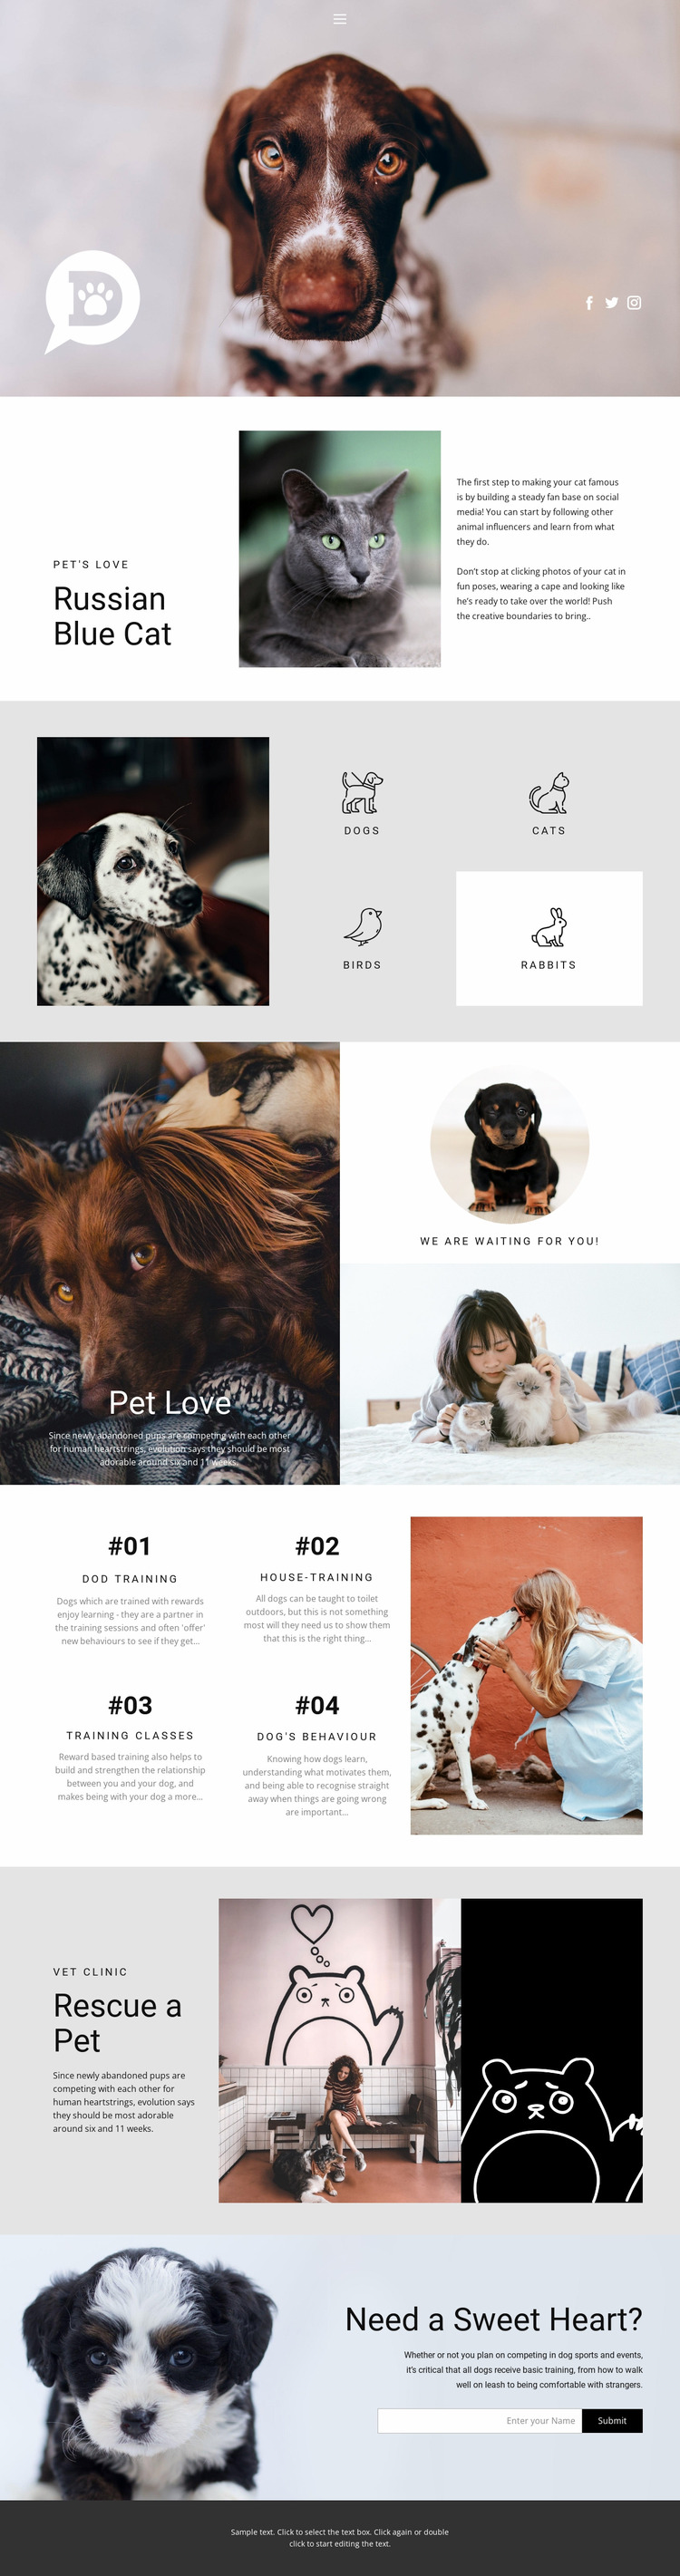 Care for pets and animals WordPress Website Builder